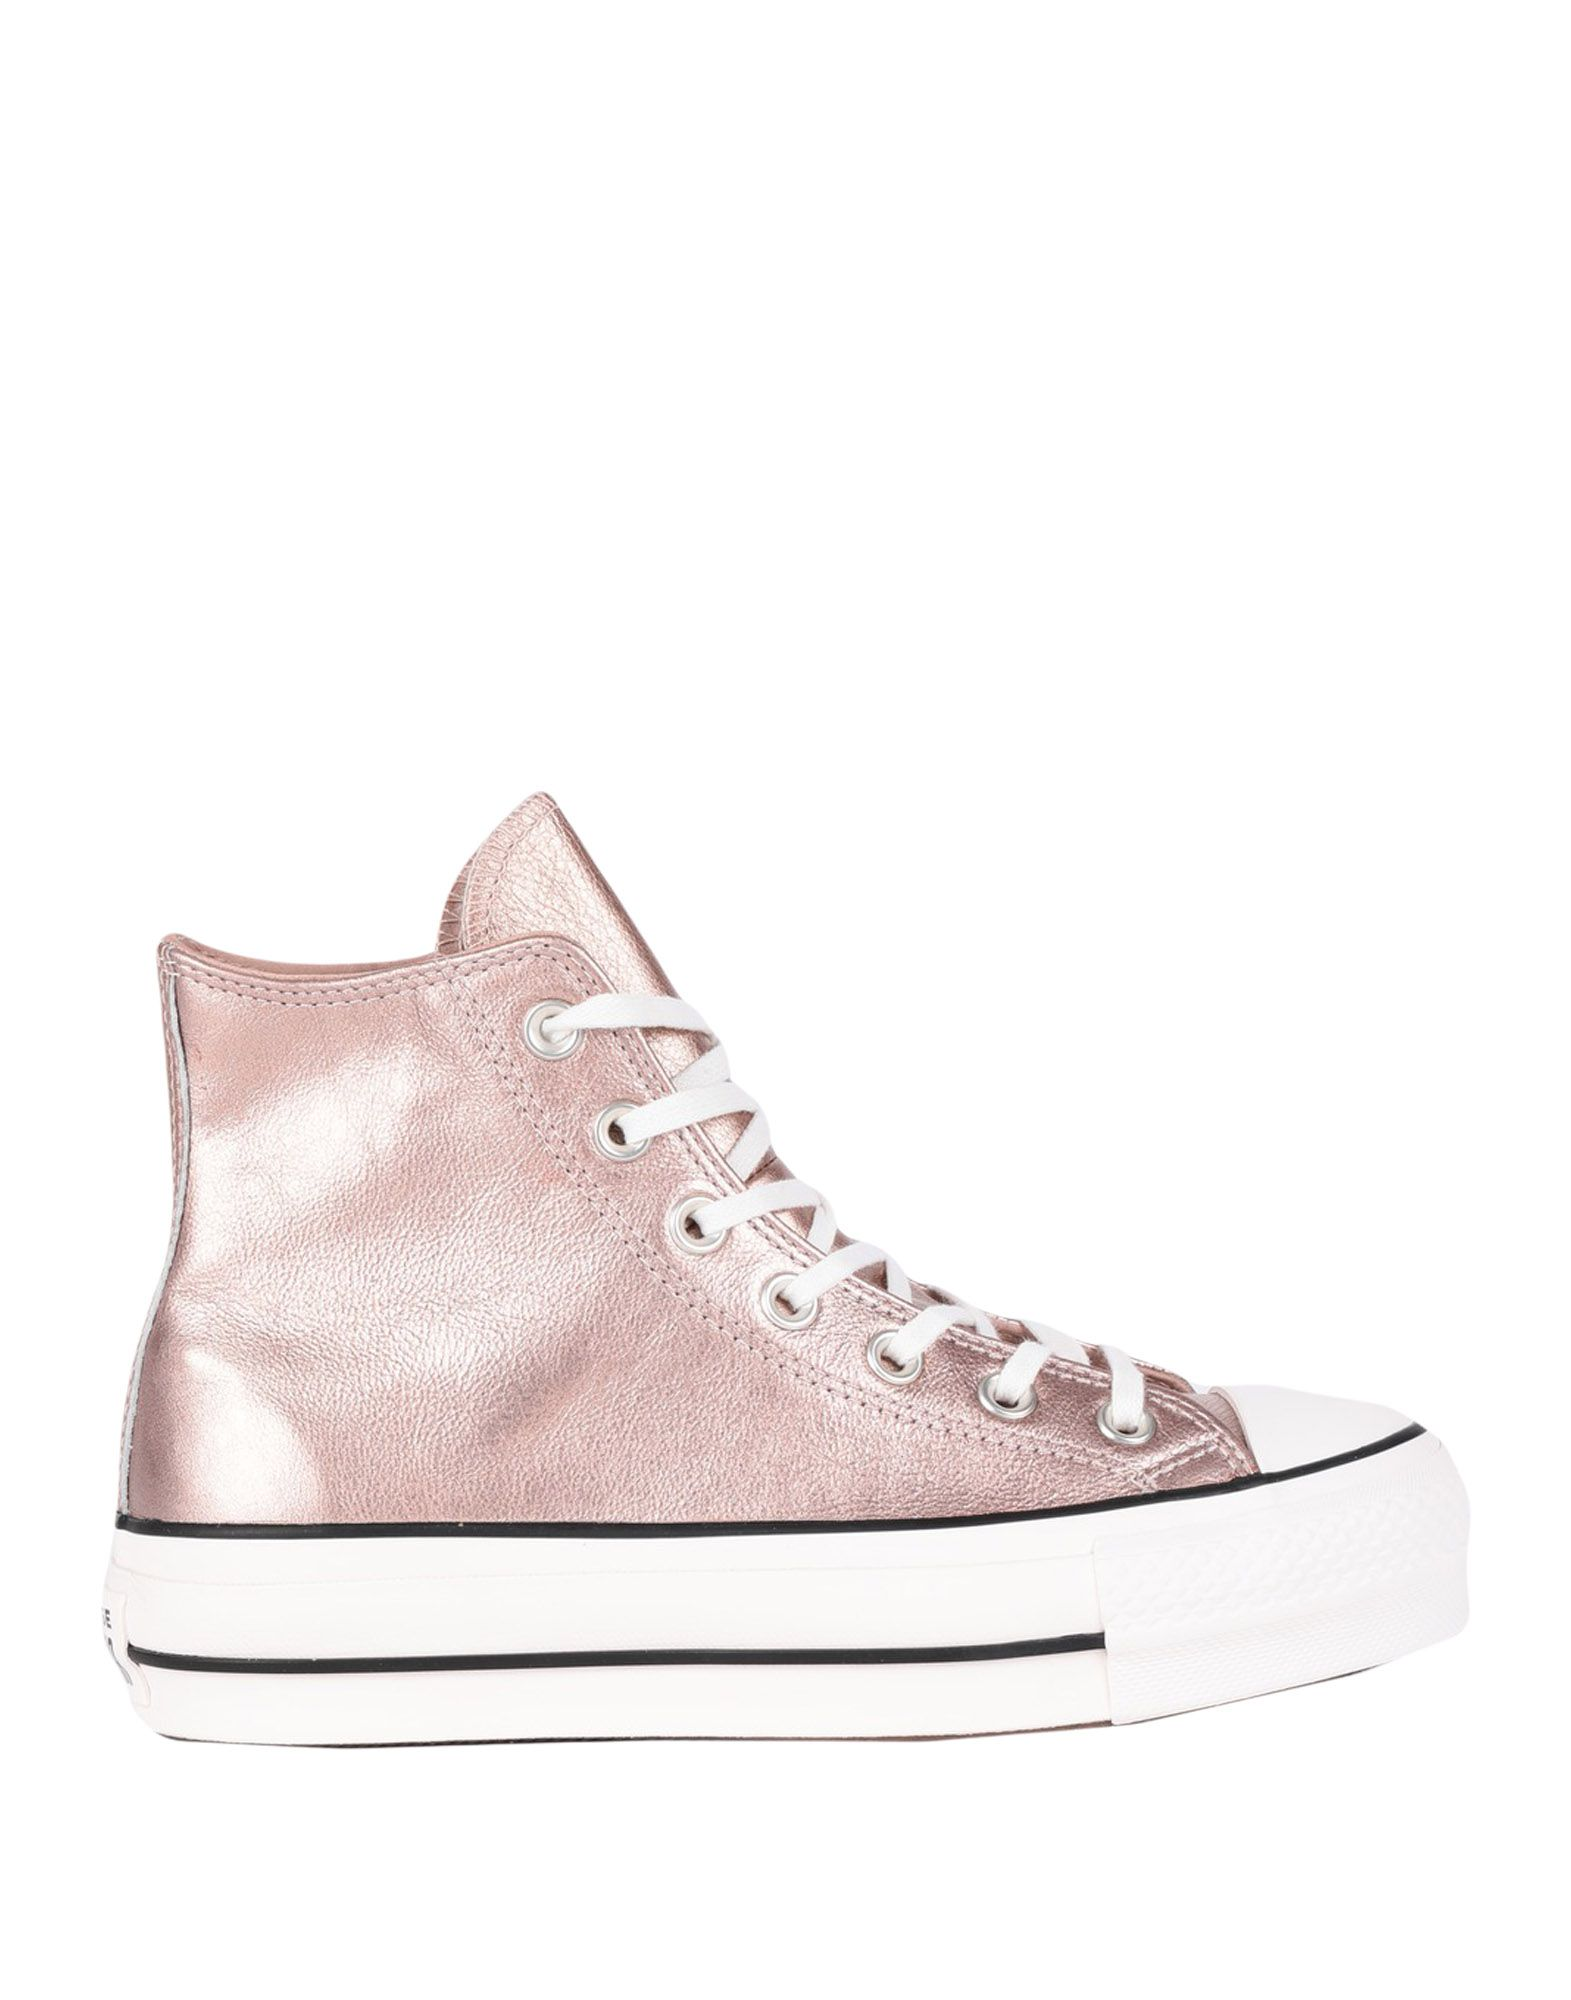 Scarpe da Ginnastica Converse All Star Ctas Lift 11551324ON Hi - Donna - 11551324ON Lift 60b004